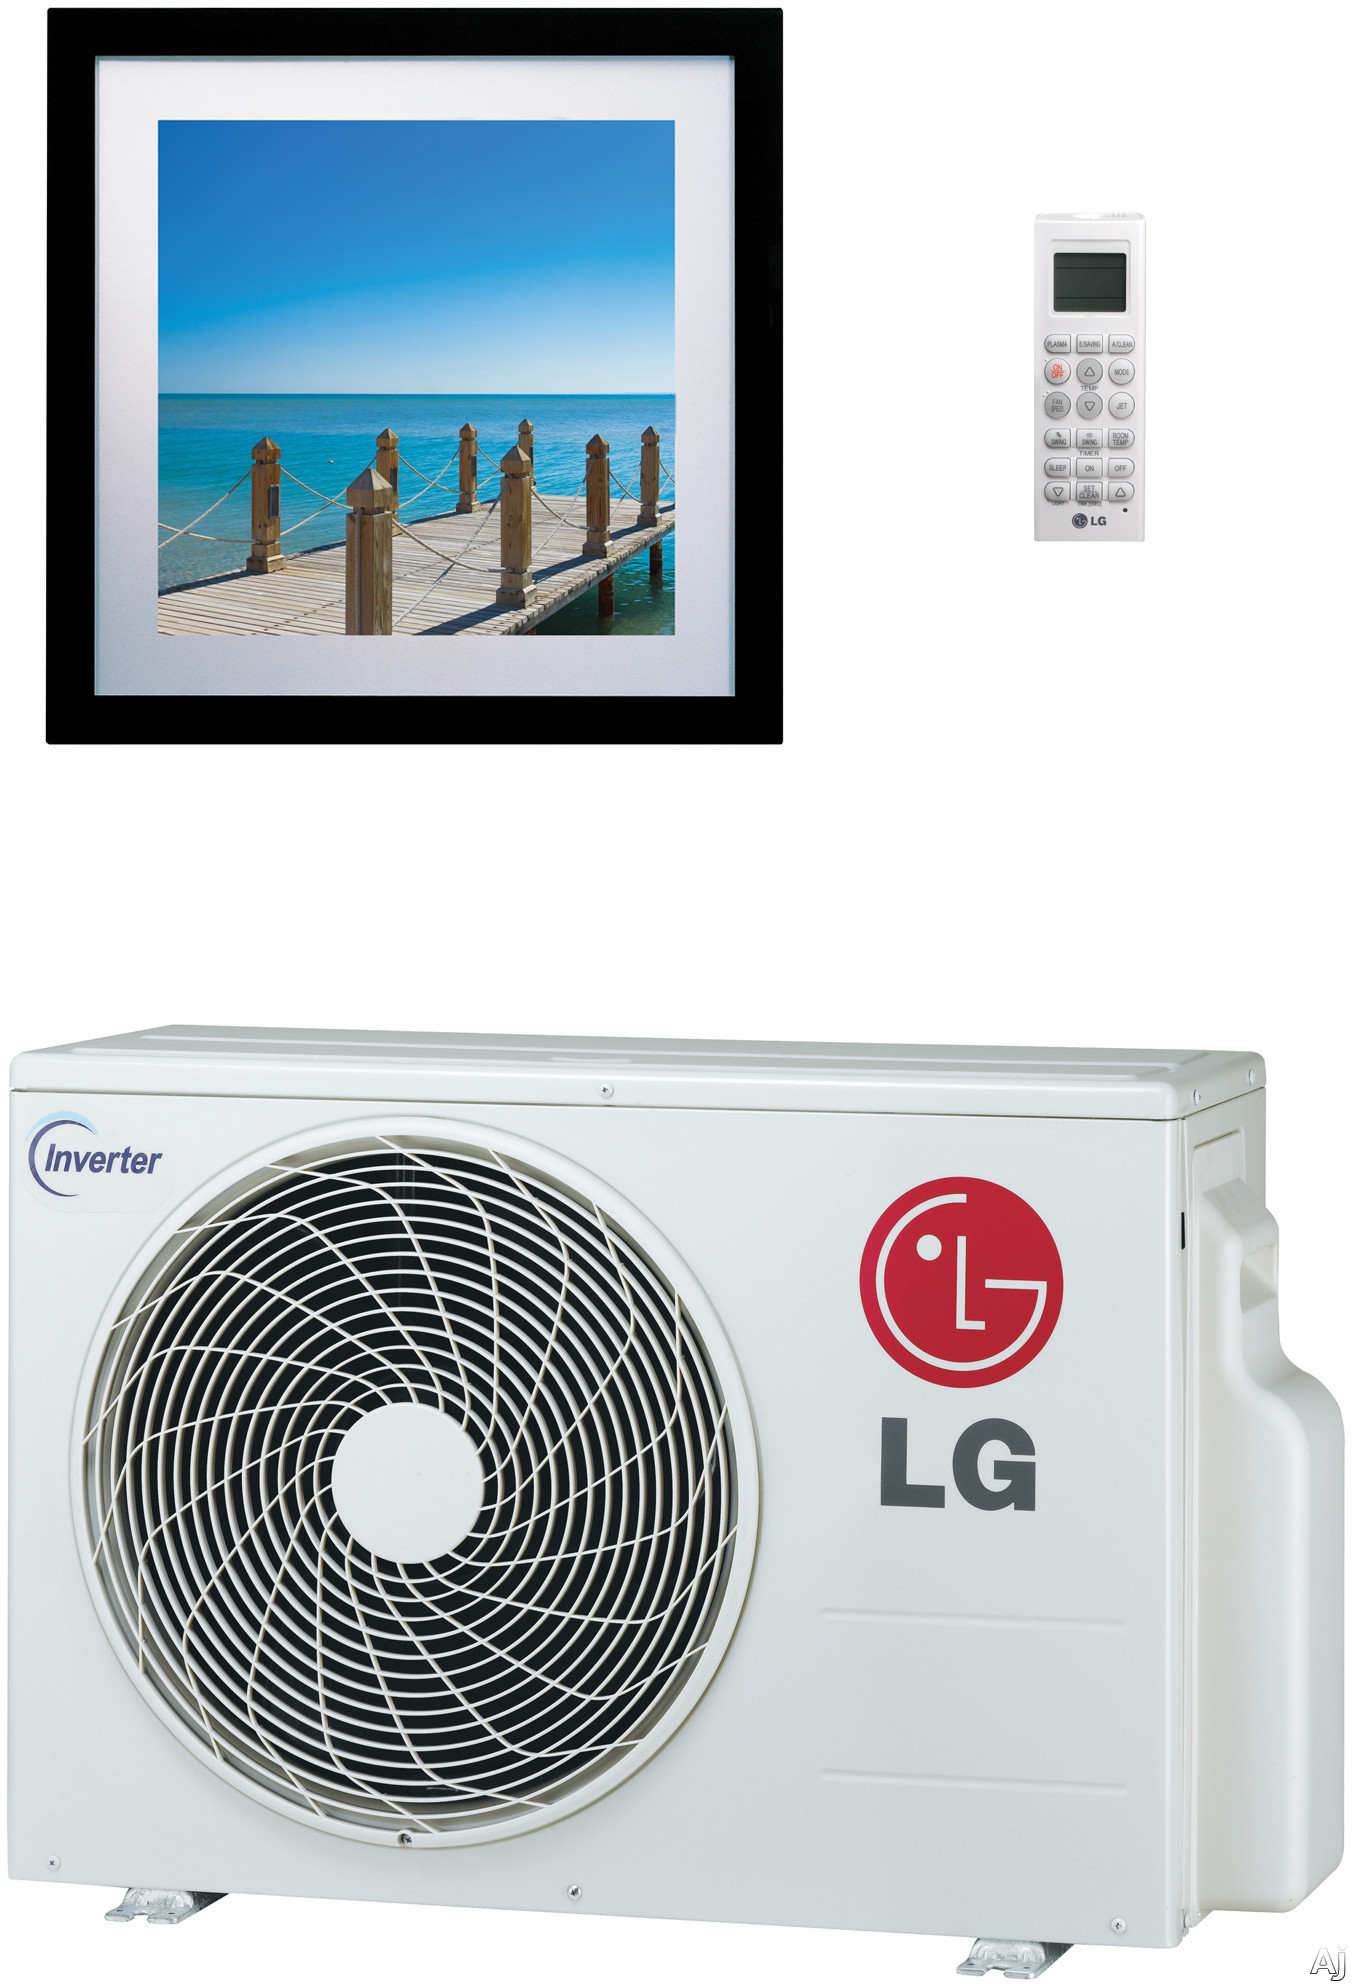 Home > Air Conditioners > Mini Split Air Conditioners > LA090HVP #AA2130